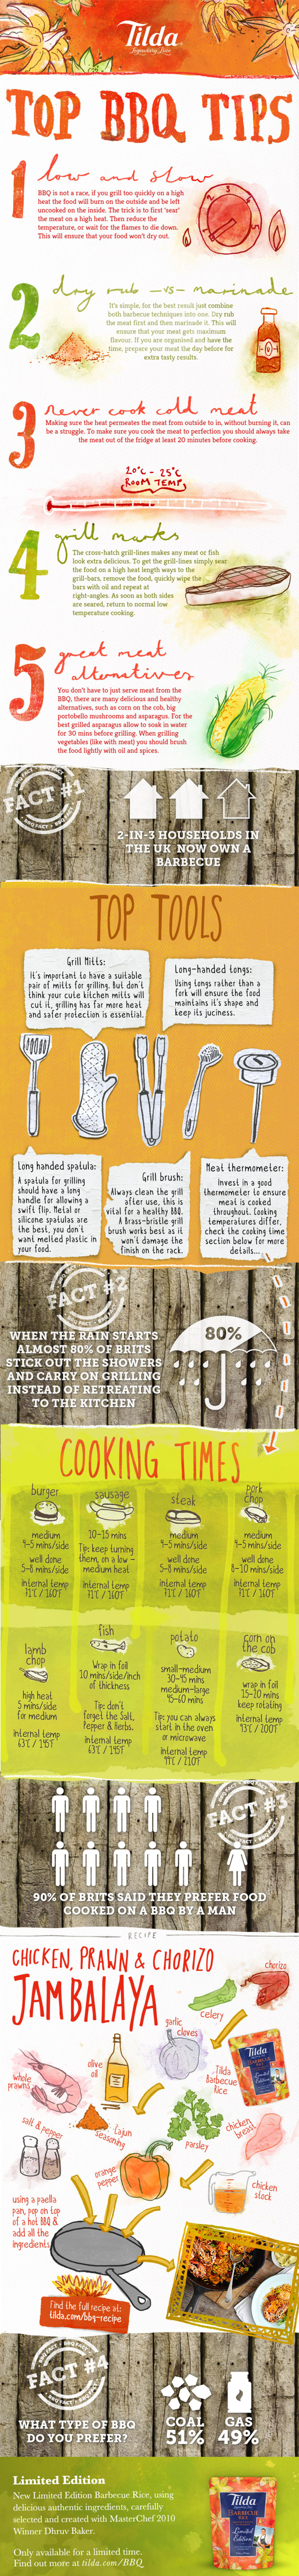 Top BBQ Tips Infographic